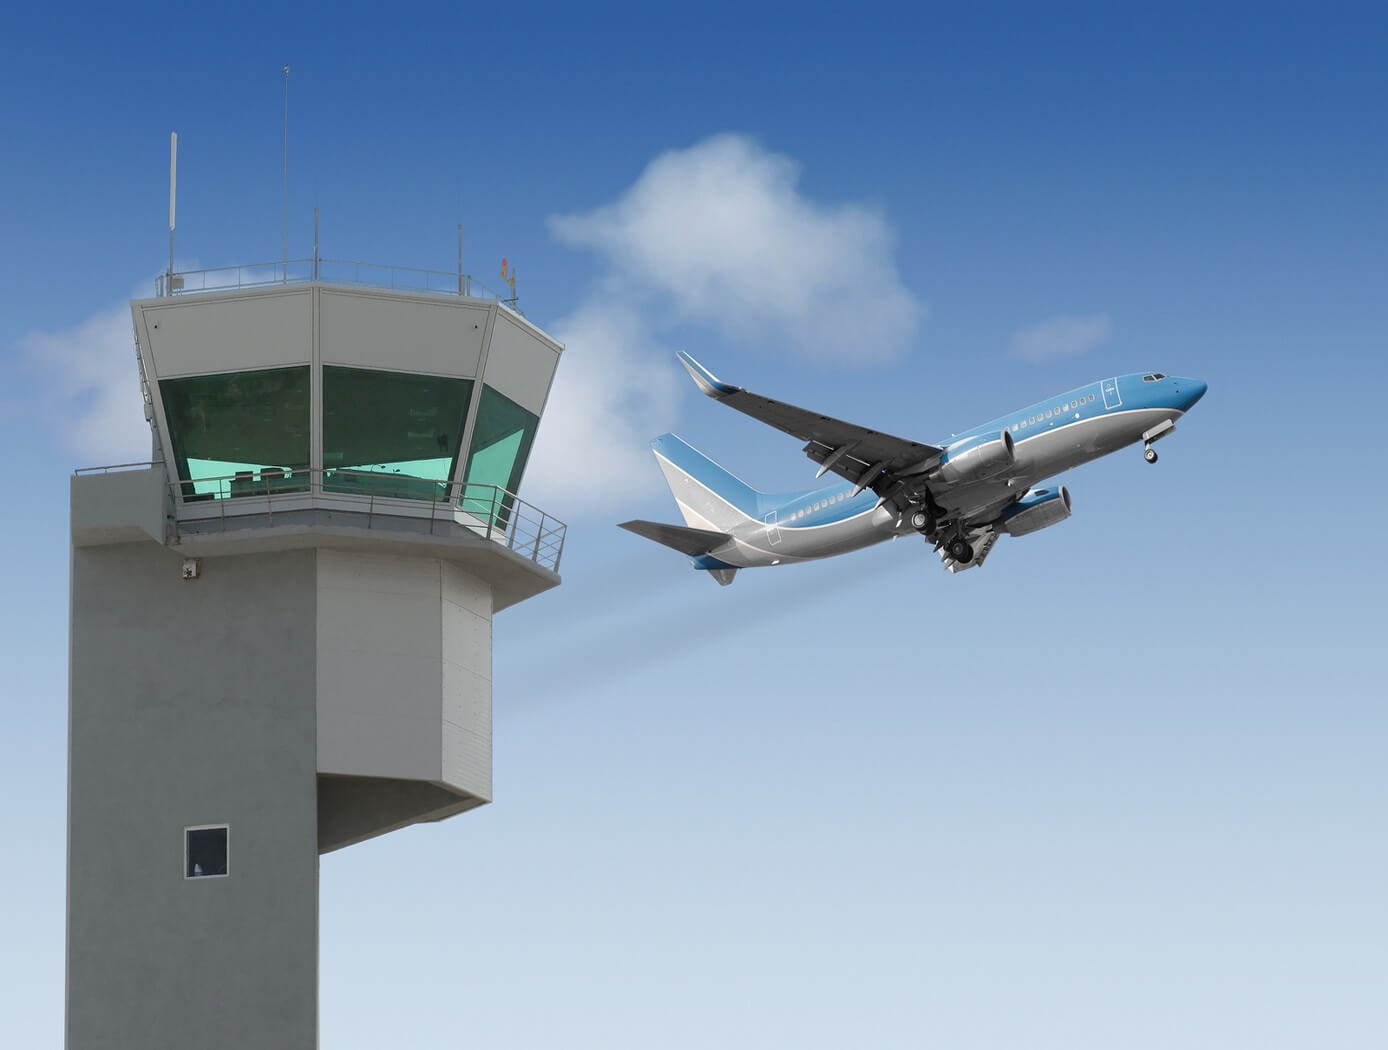 Air Traffic Management Market to exceed $10 billion by 2025 due to growing airports development